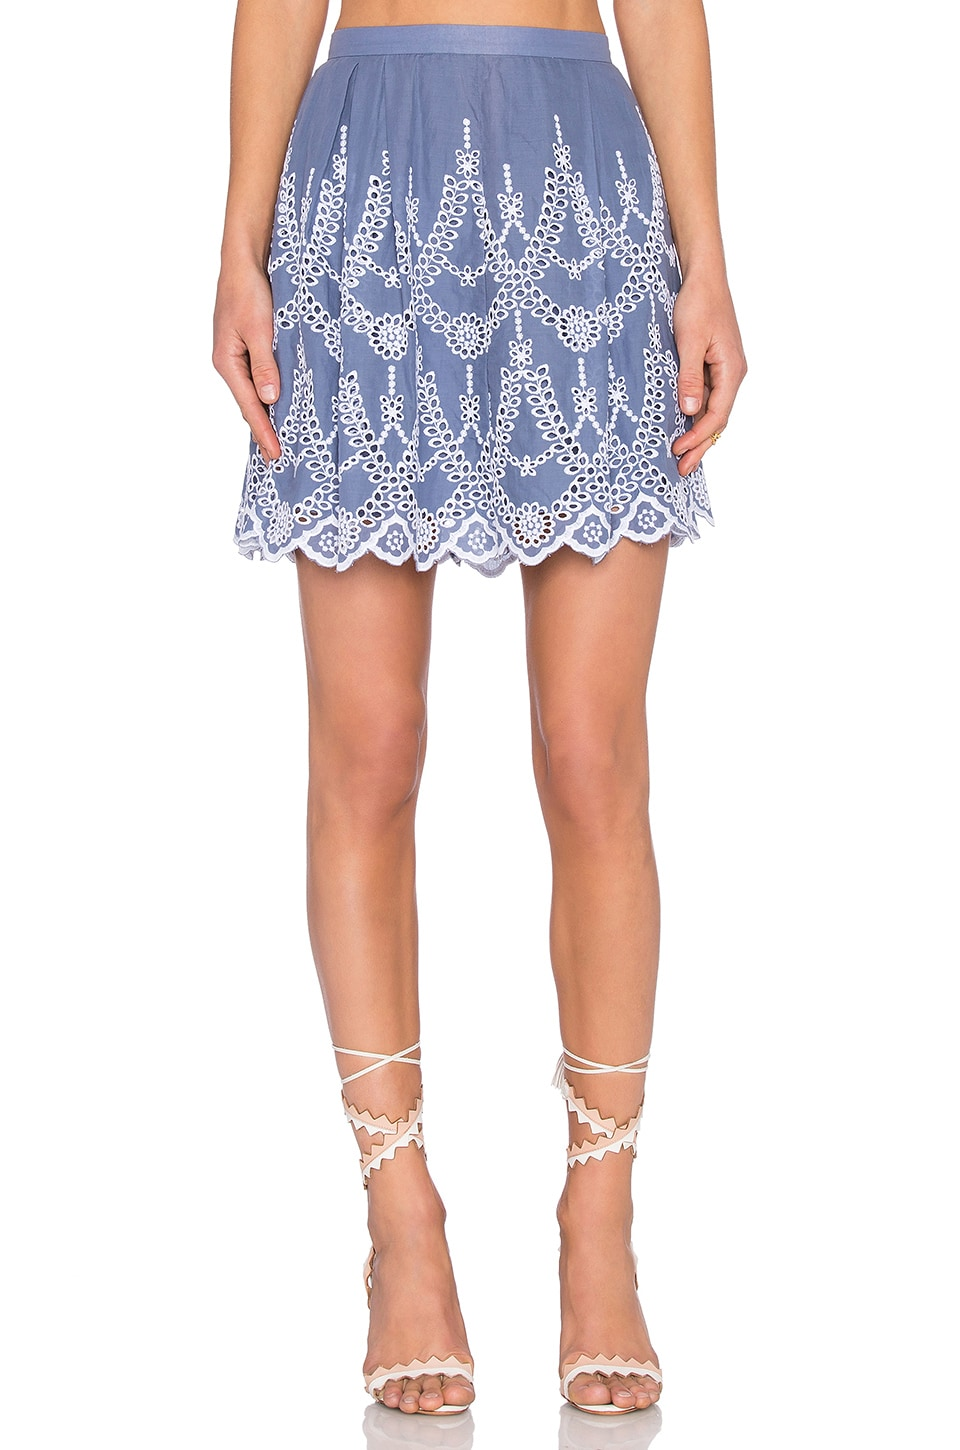 KENDALL + KYLIE Eyelet Circle Skirt in Tempest